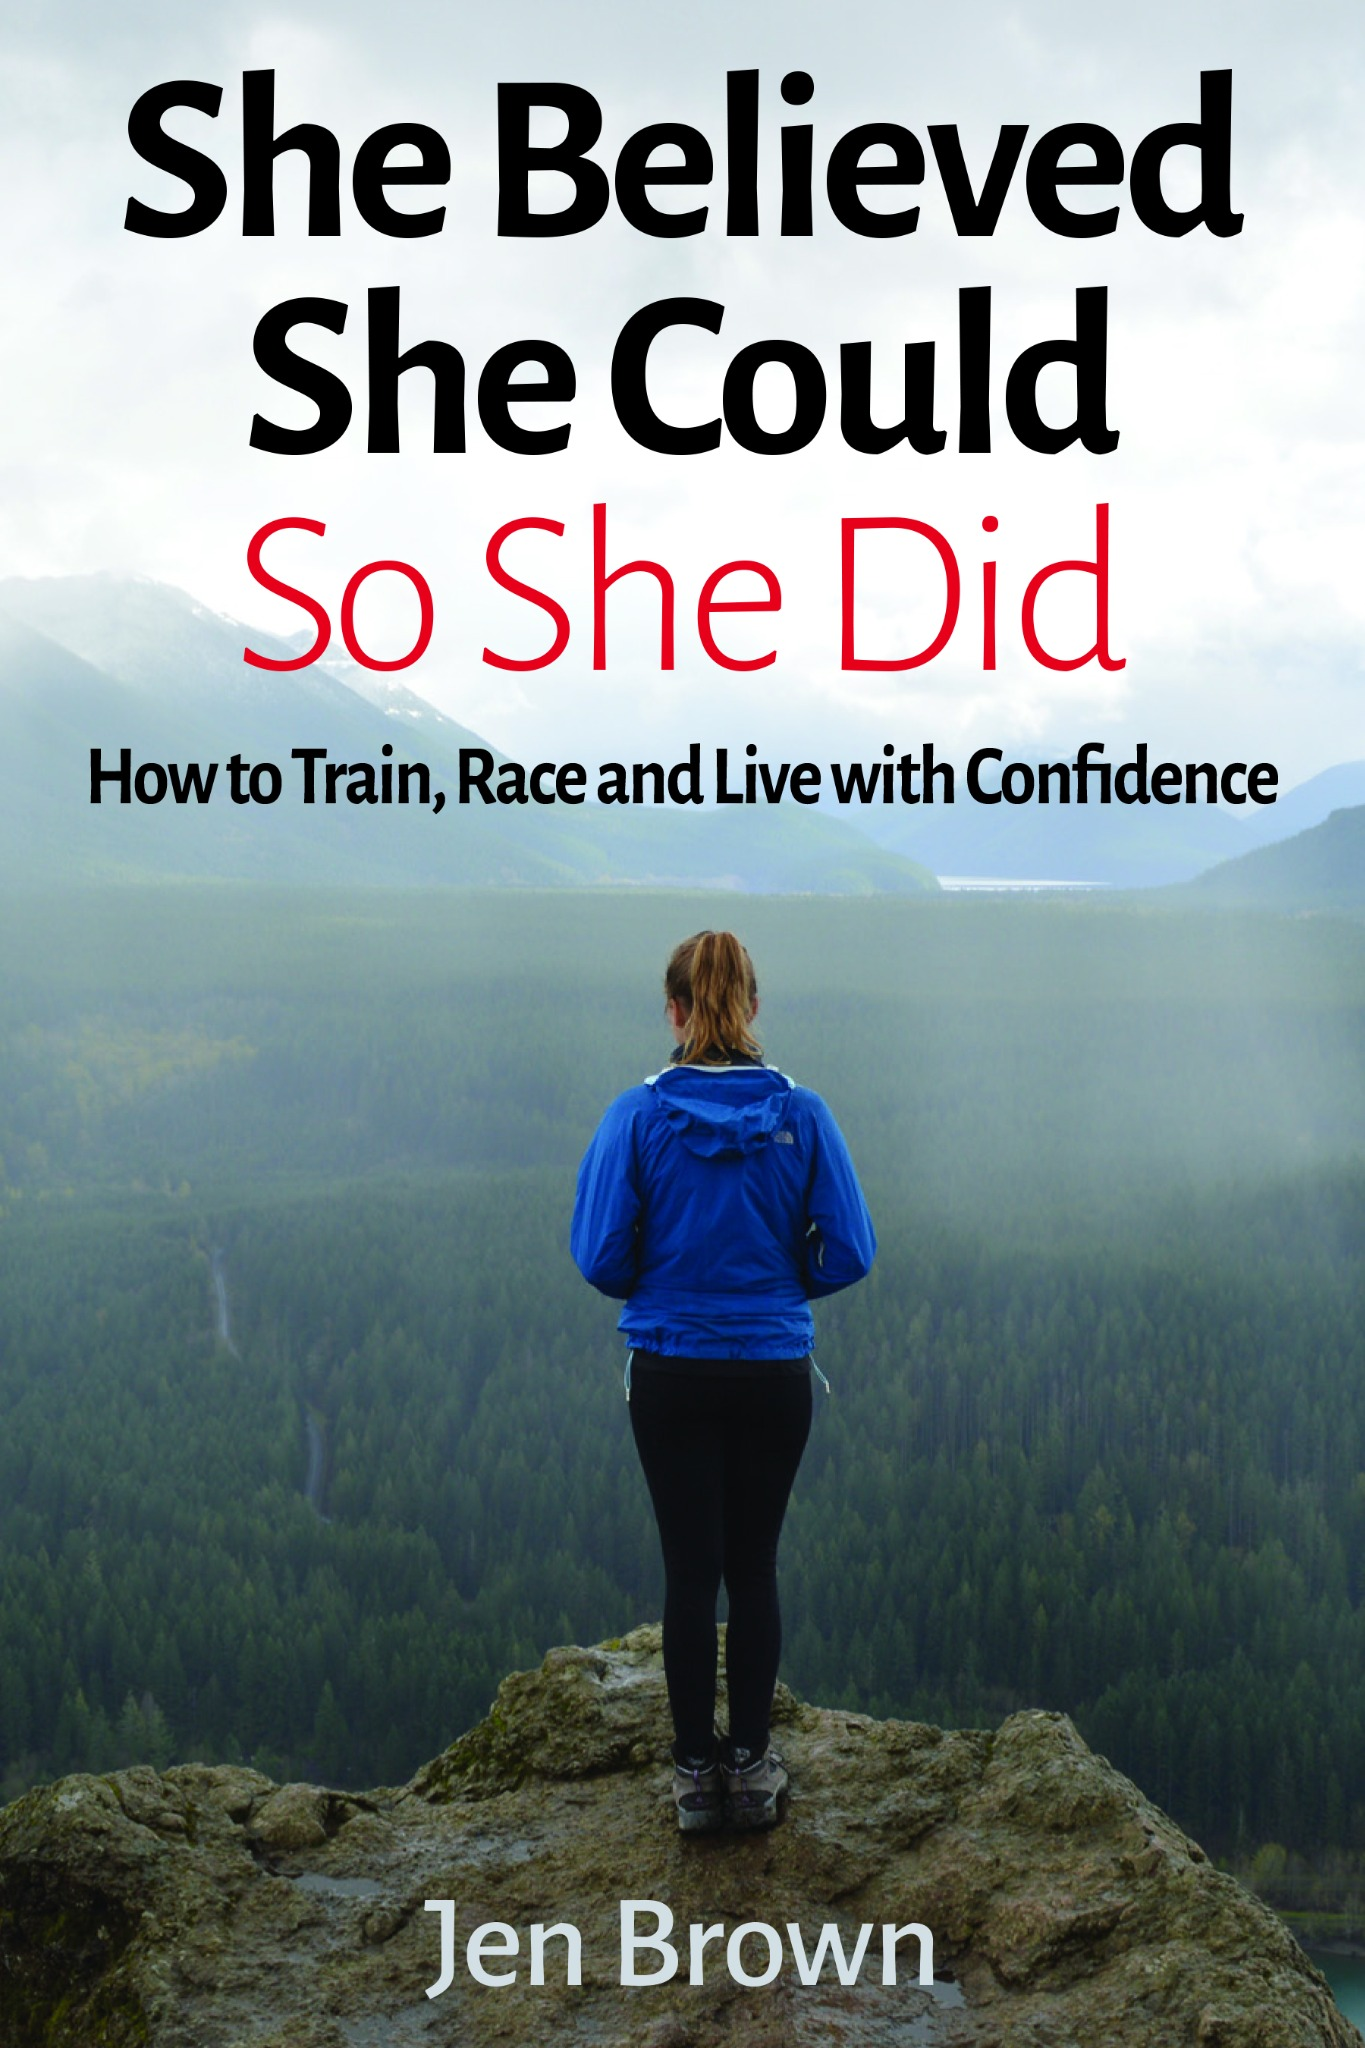 She Believed She Could So She Did: How to Train, Race and Live with Confidence - Multimedia Pack